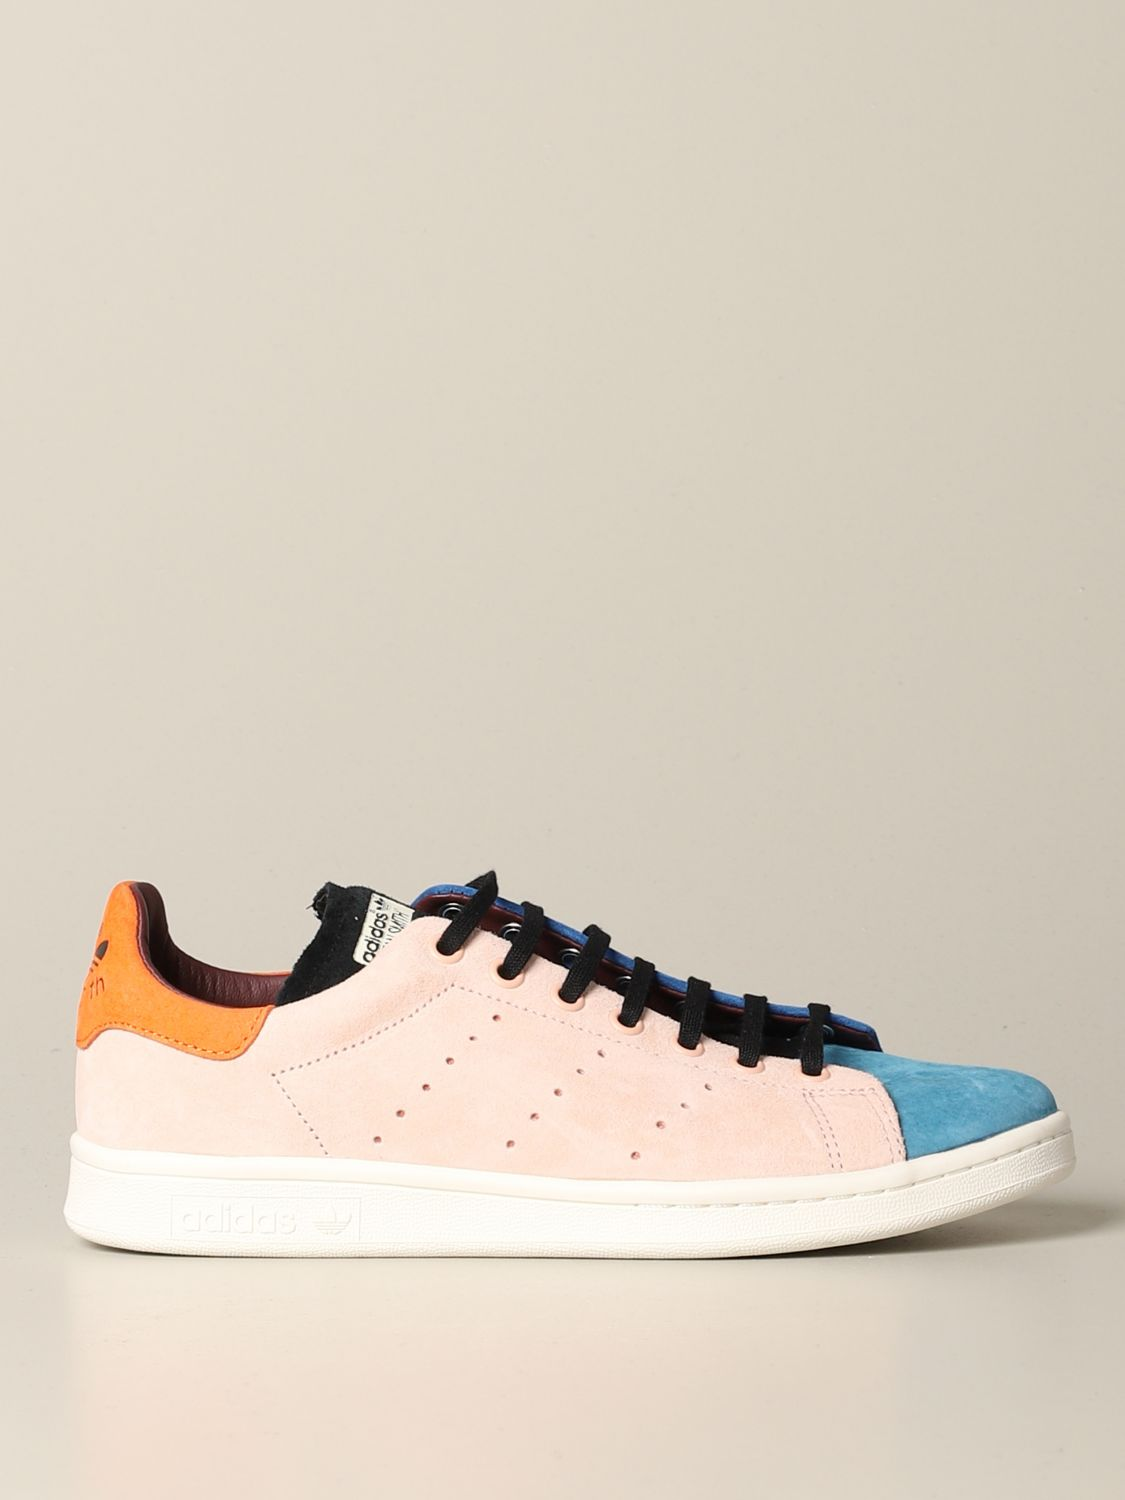 Trainers Adidas Originals: Shoes men Adidas Originals multicolor 1